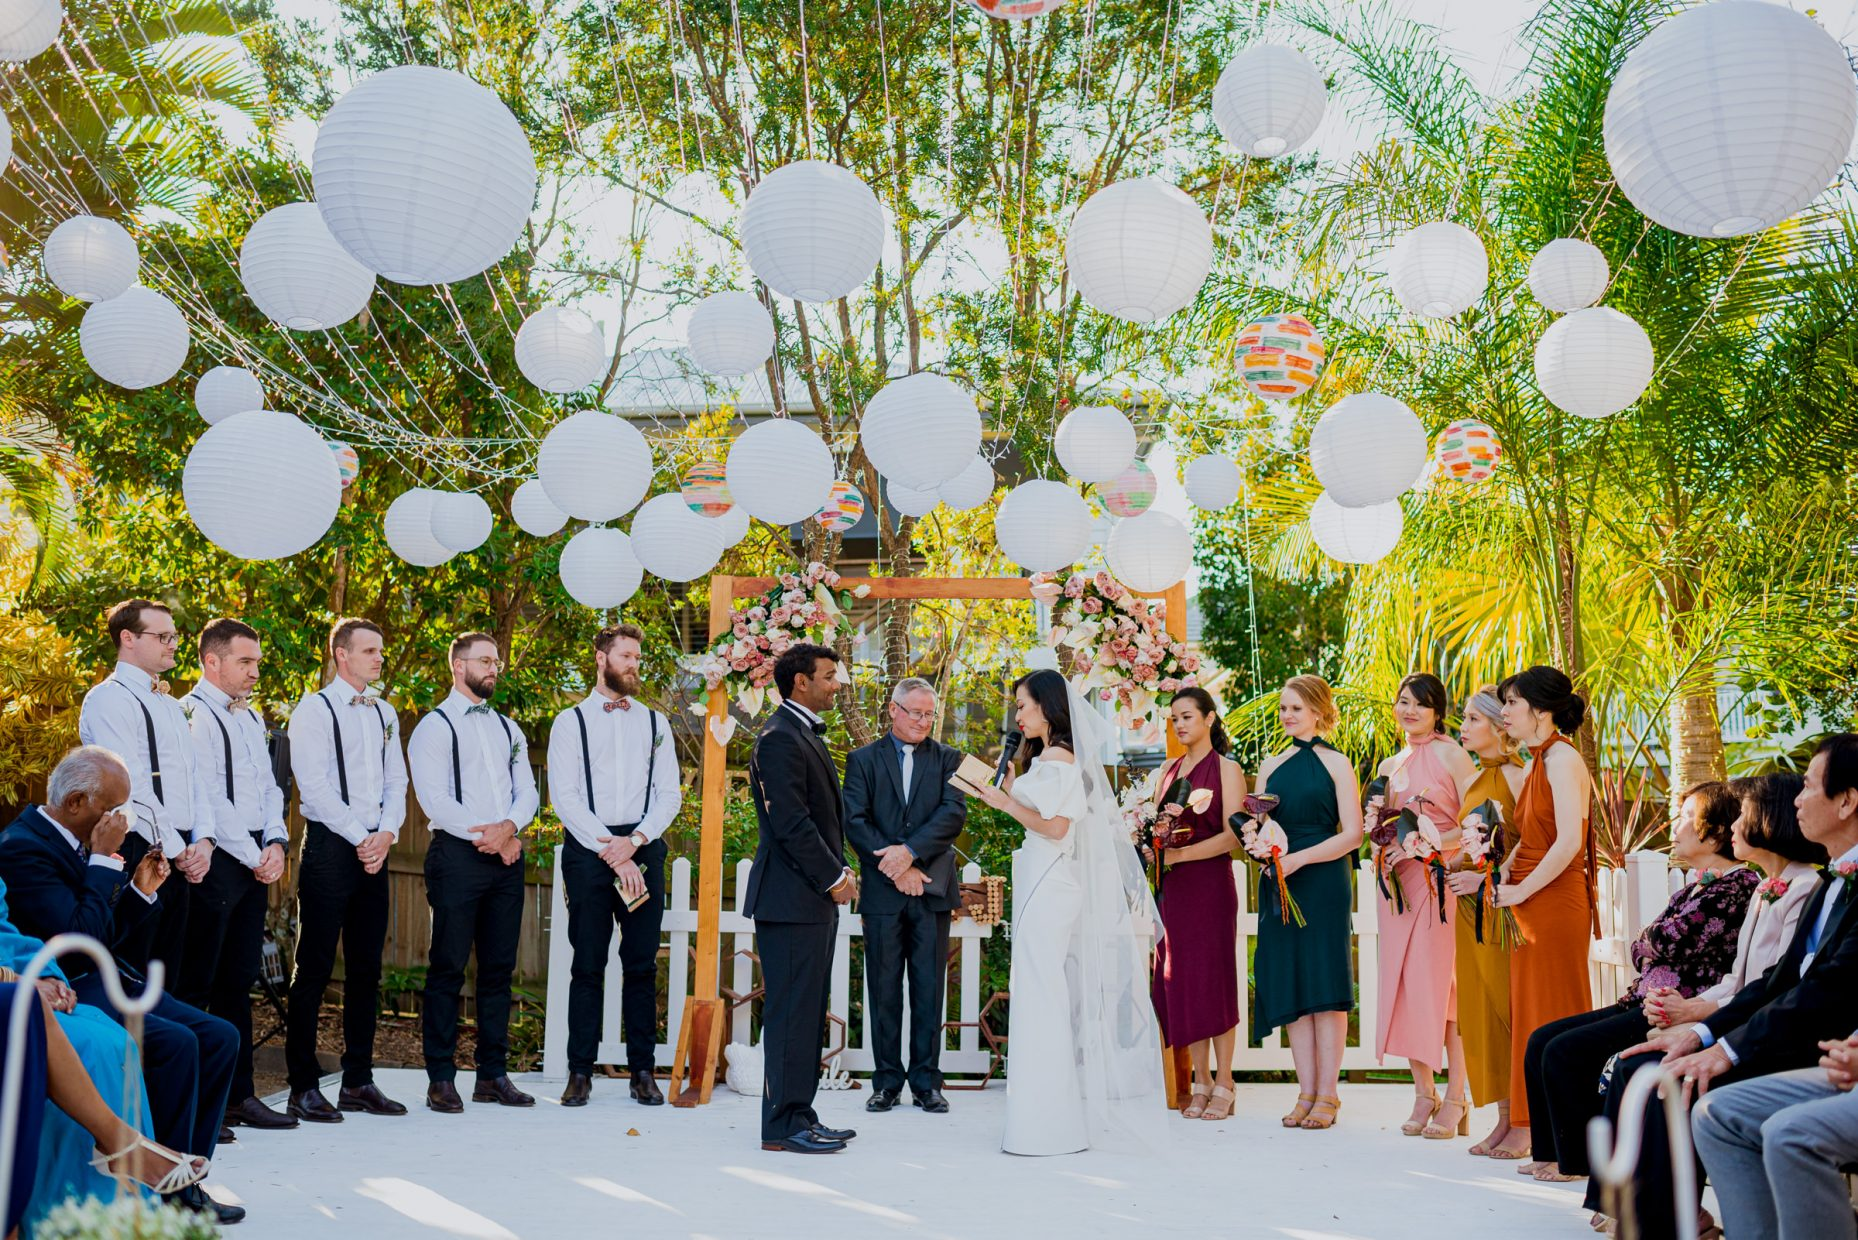 A colourful outdoor wedding ceremony held on a white stage with white lanterns overheard